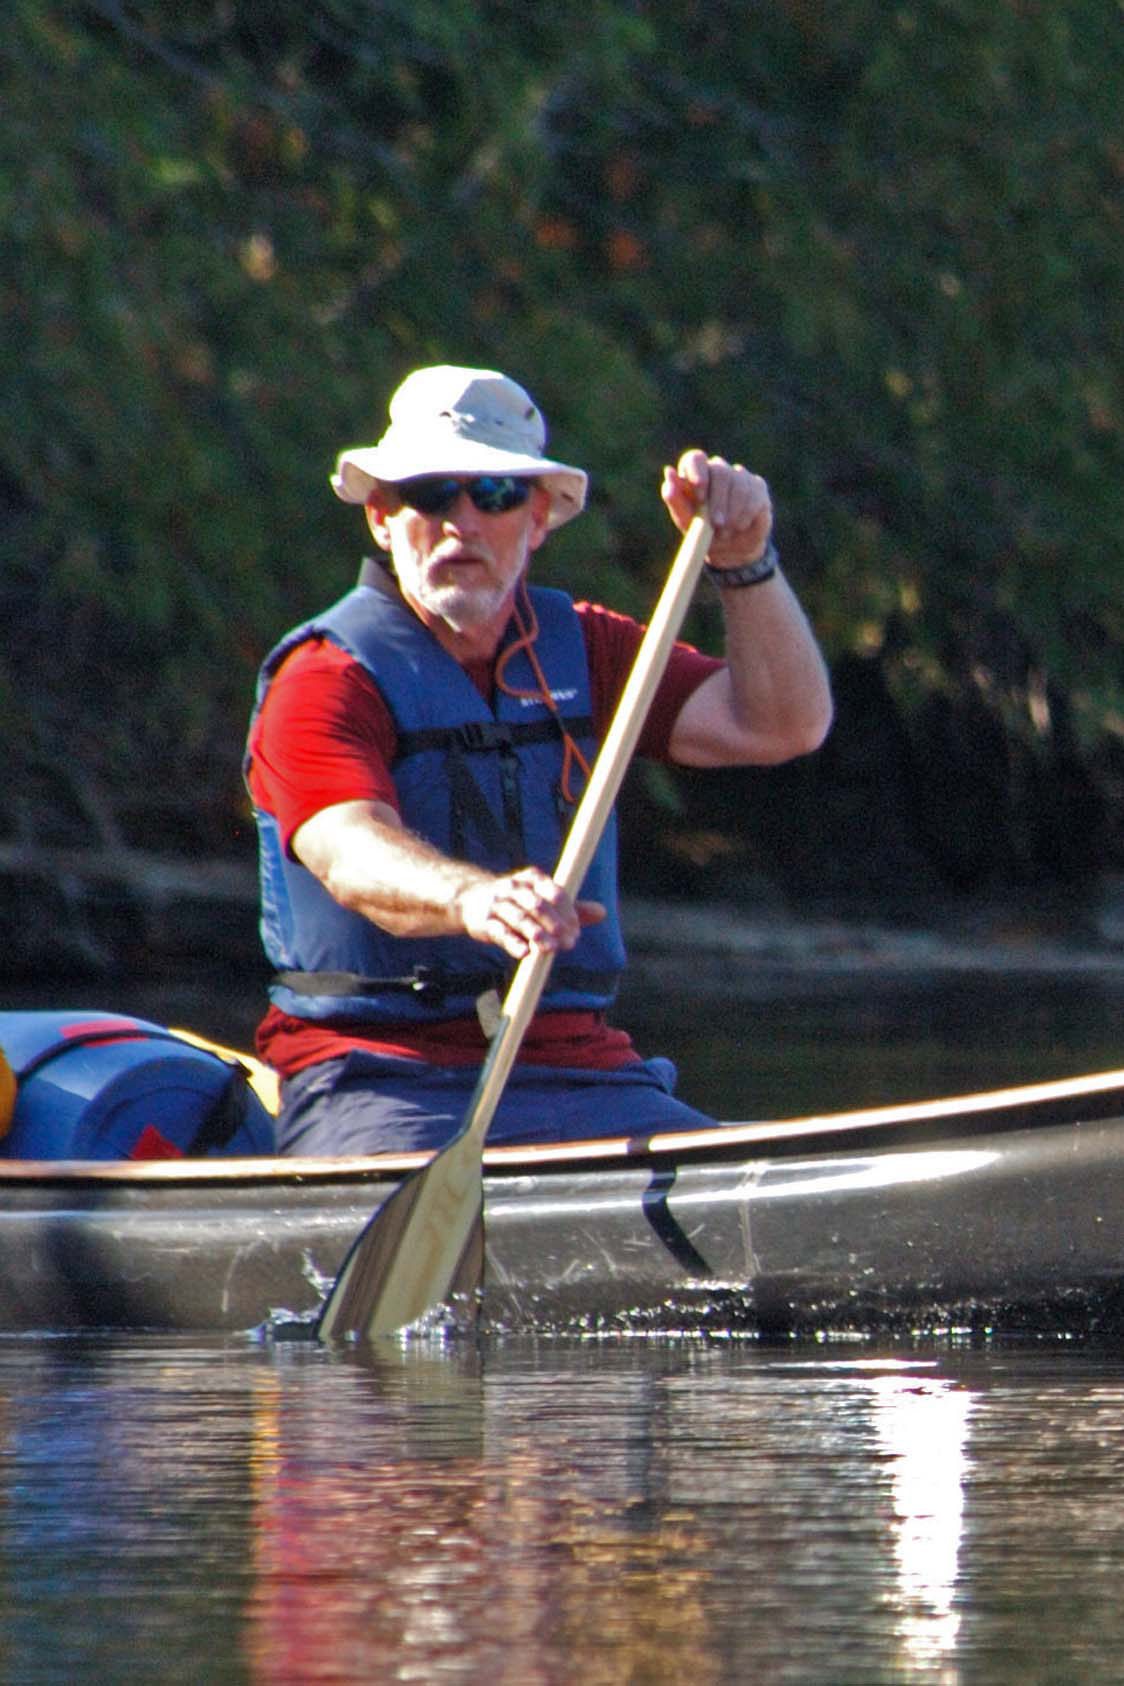 Rob canoeing the BWCA | Photo courtesy of Rob Kesselring